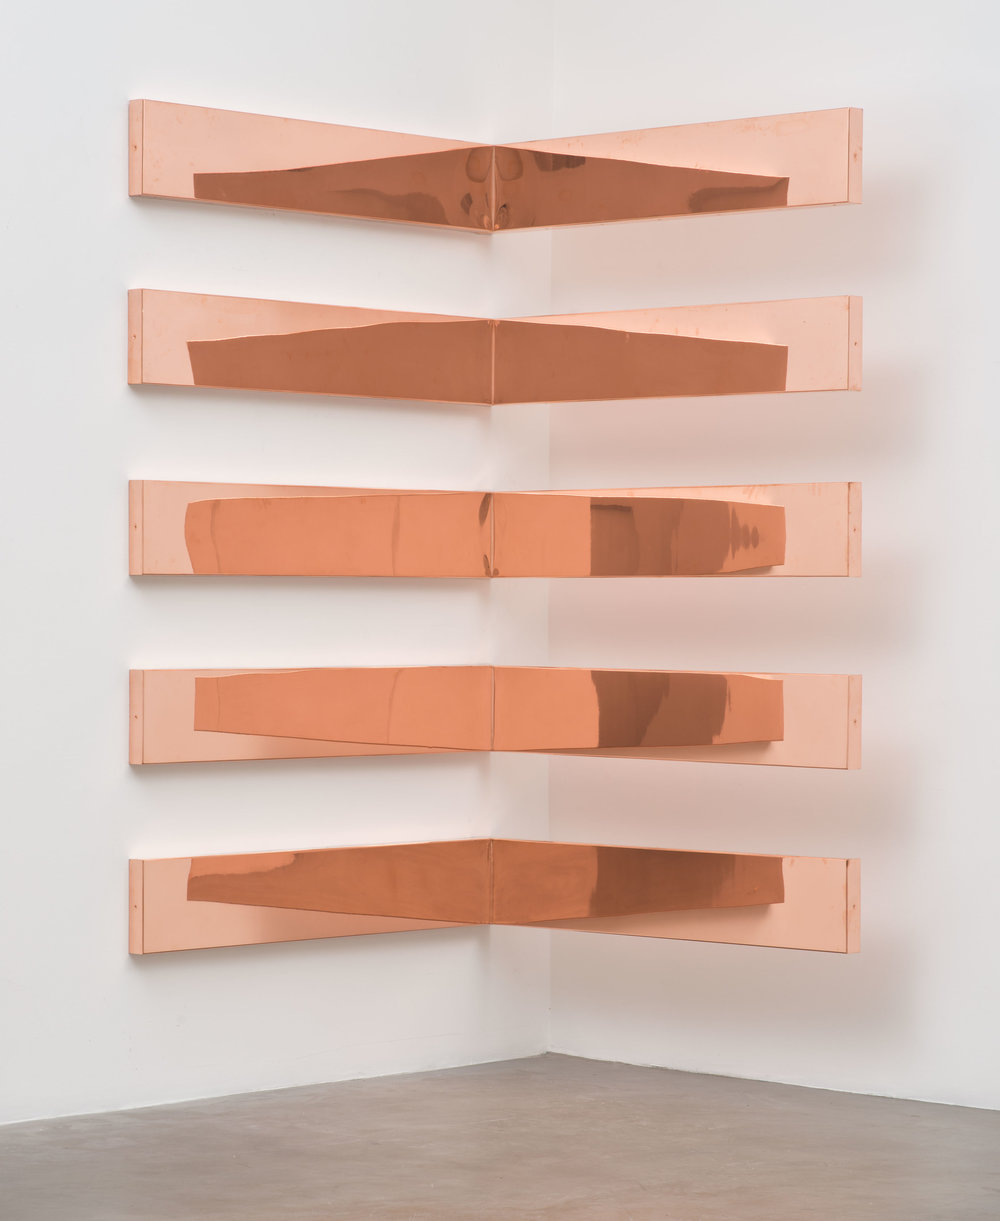 "Copper Surrogate (60"" x 120"" 48 ounce C11000 Copper Alloy, 90º Bend, 60"" Bisection/5 Sections: December 4/December 7, 2014, Miami Beach, Florida, February 10–12, 2015, Los Angeles, California)    2014–   Polished copper  11 x 60 x 60 inches each, 5 parts  Surrogates (Modular, Art Handling), 2014–"